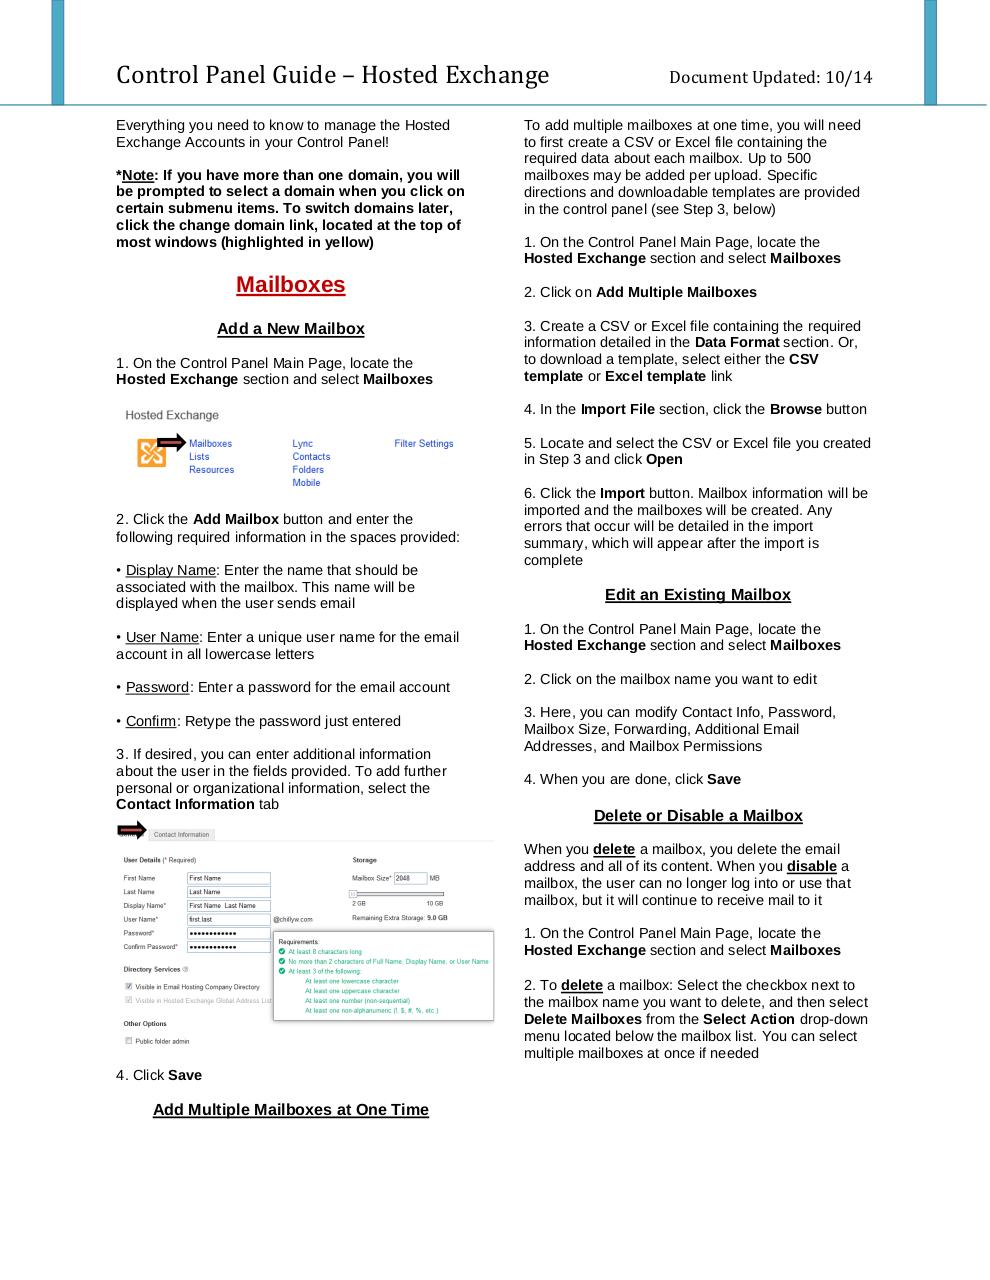 Preview of PDF document control-panel-guide-hosted-exchange.pdf